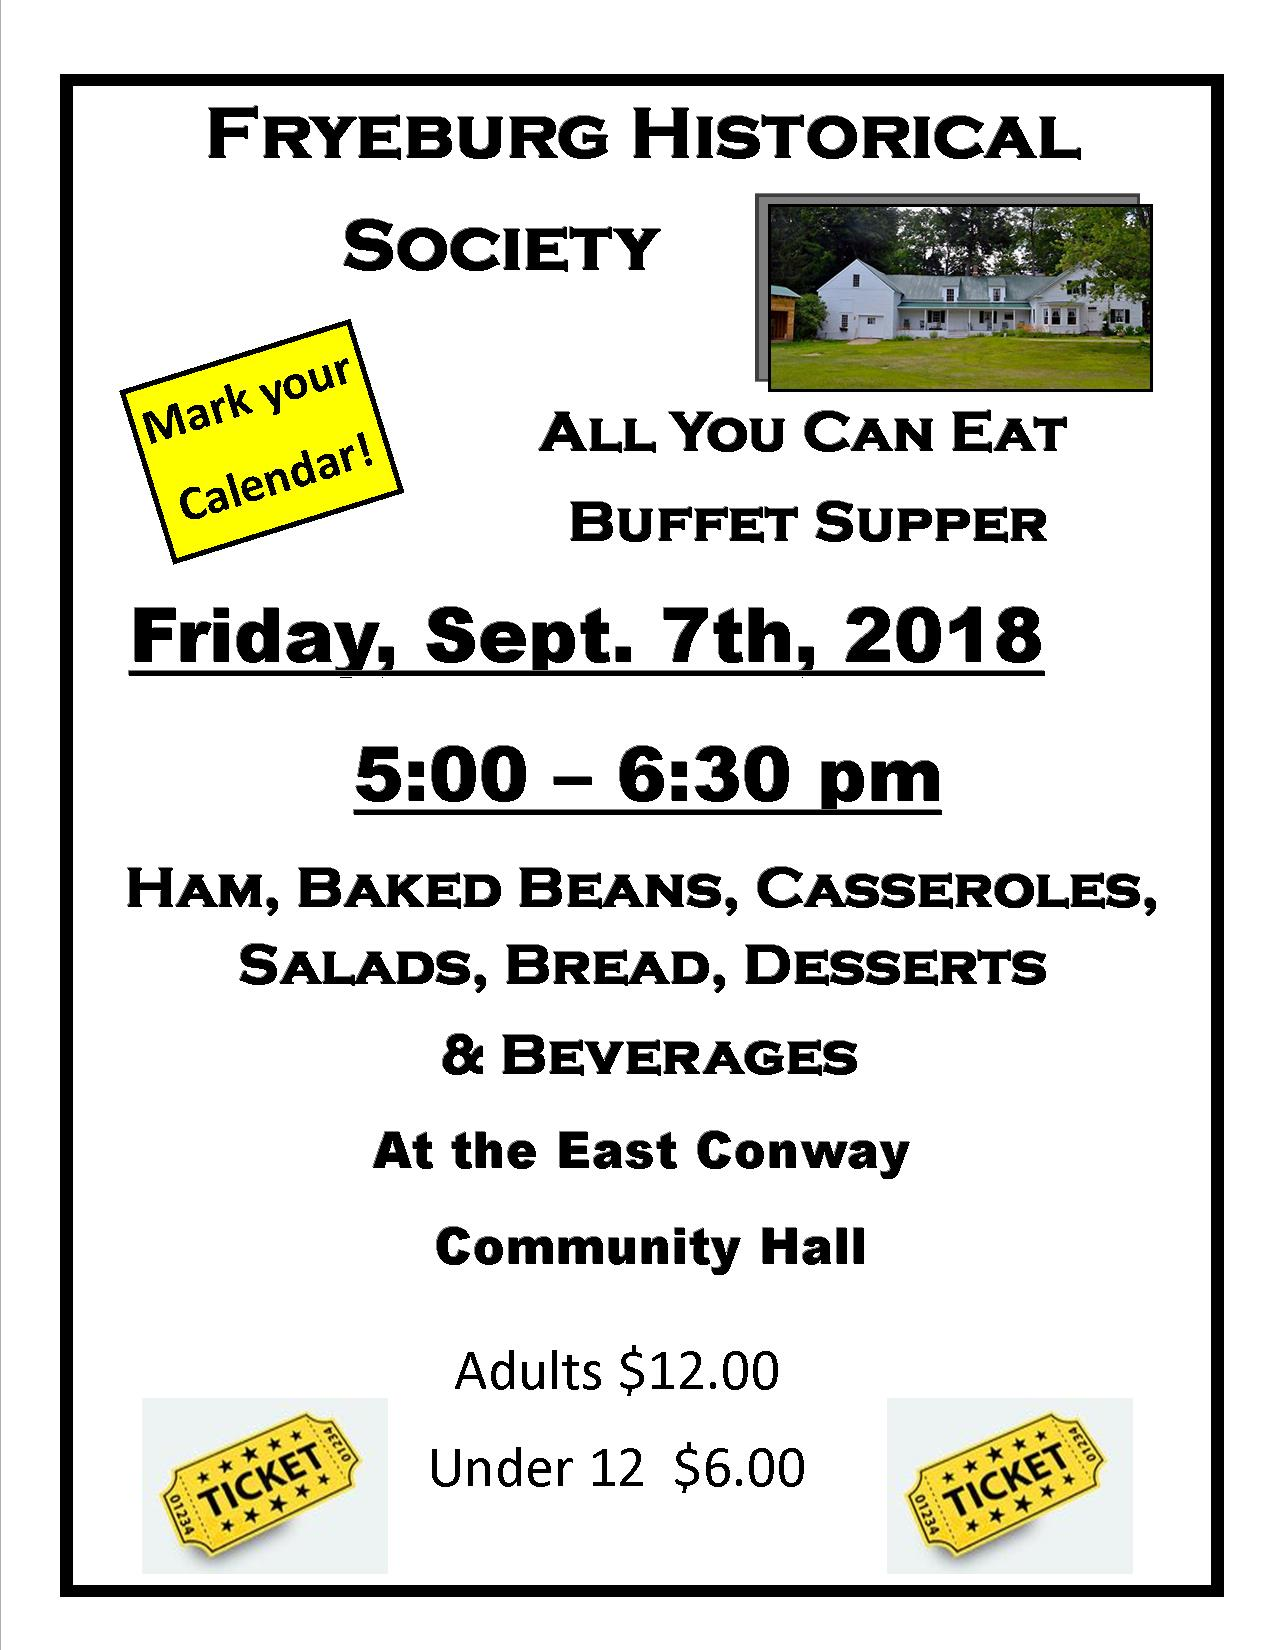 Fryeburg Historical Society, All You Can Eat Buffet Supper Friday, Sept. 7, 2018, 5:00-6:30 pm.  Adults:$12, Under 12: $6.